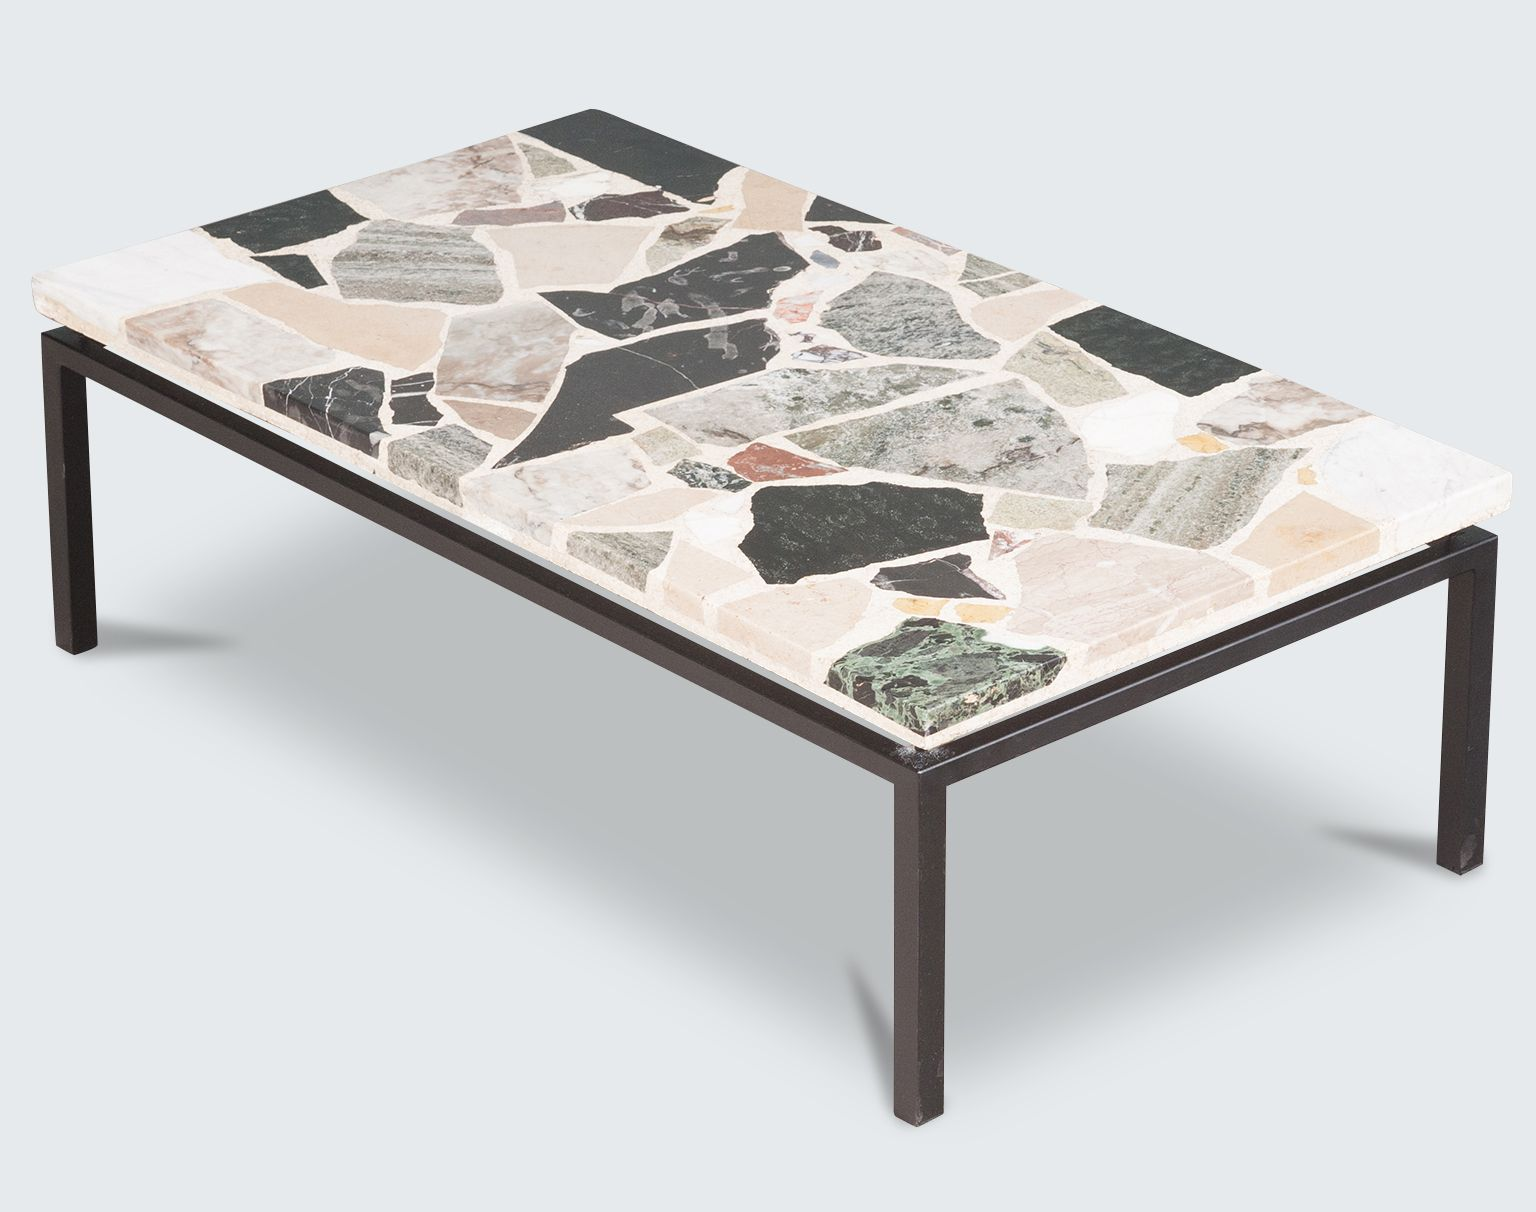 terrazzo coffee table furniture and lighting pinterest quai branly branly et maxime. Black Bedroom Furniture Sets. Home Design Ideas